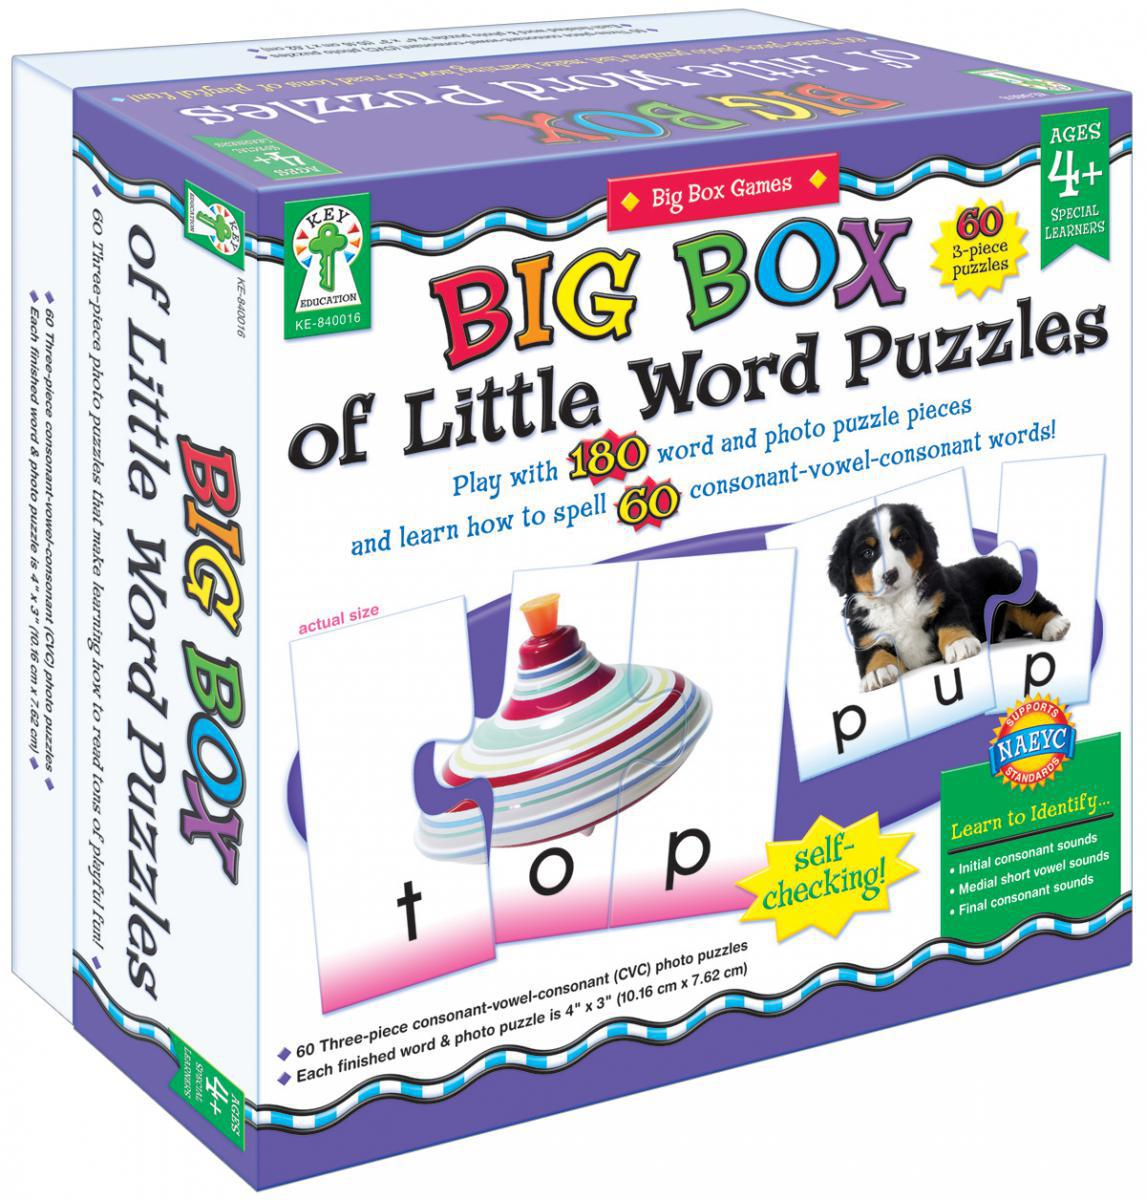 Big Box of Little Word Puzzles